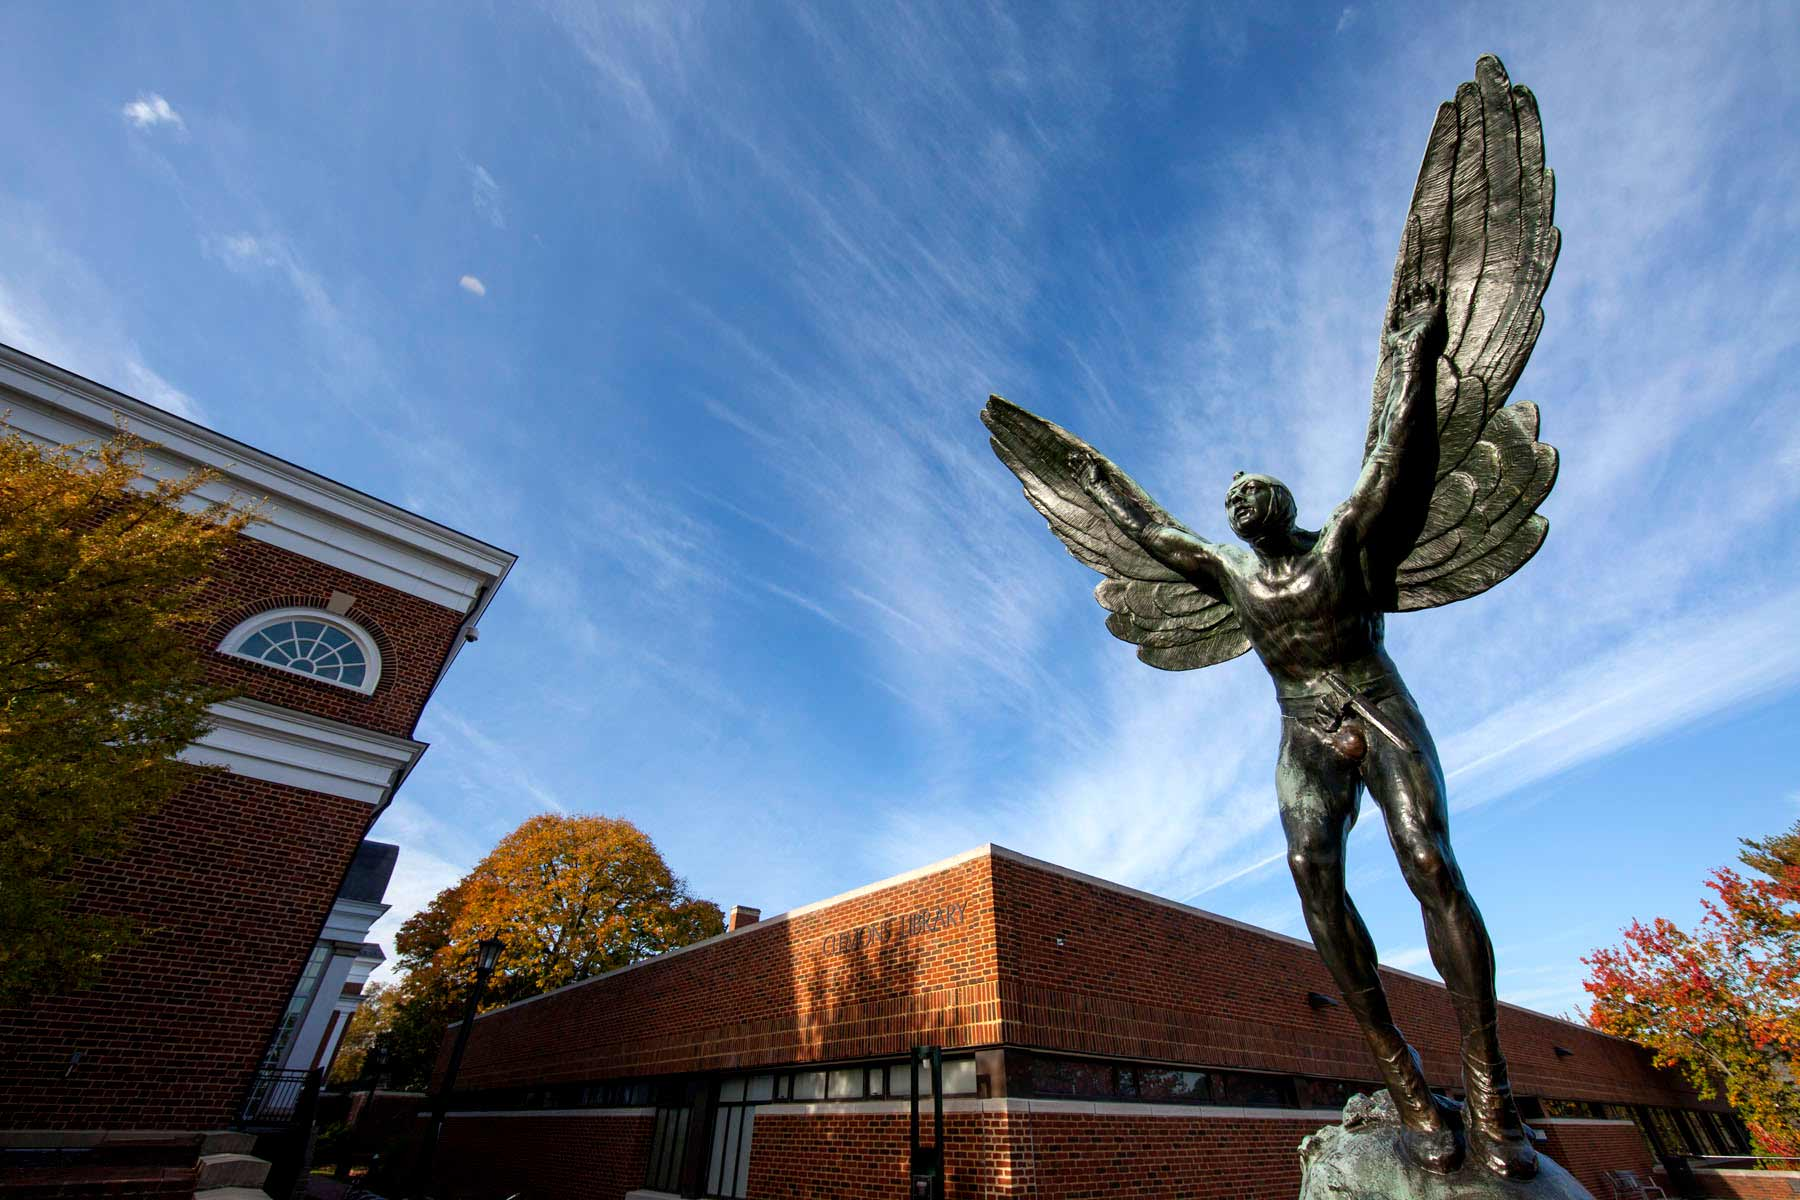 """The Aviator,"" which currently resides in the plaza of Clemons Library, is a tribute to James McConnell, a pilot shot down over France in World War I. (Photo by Dan Addison, University Communications)"